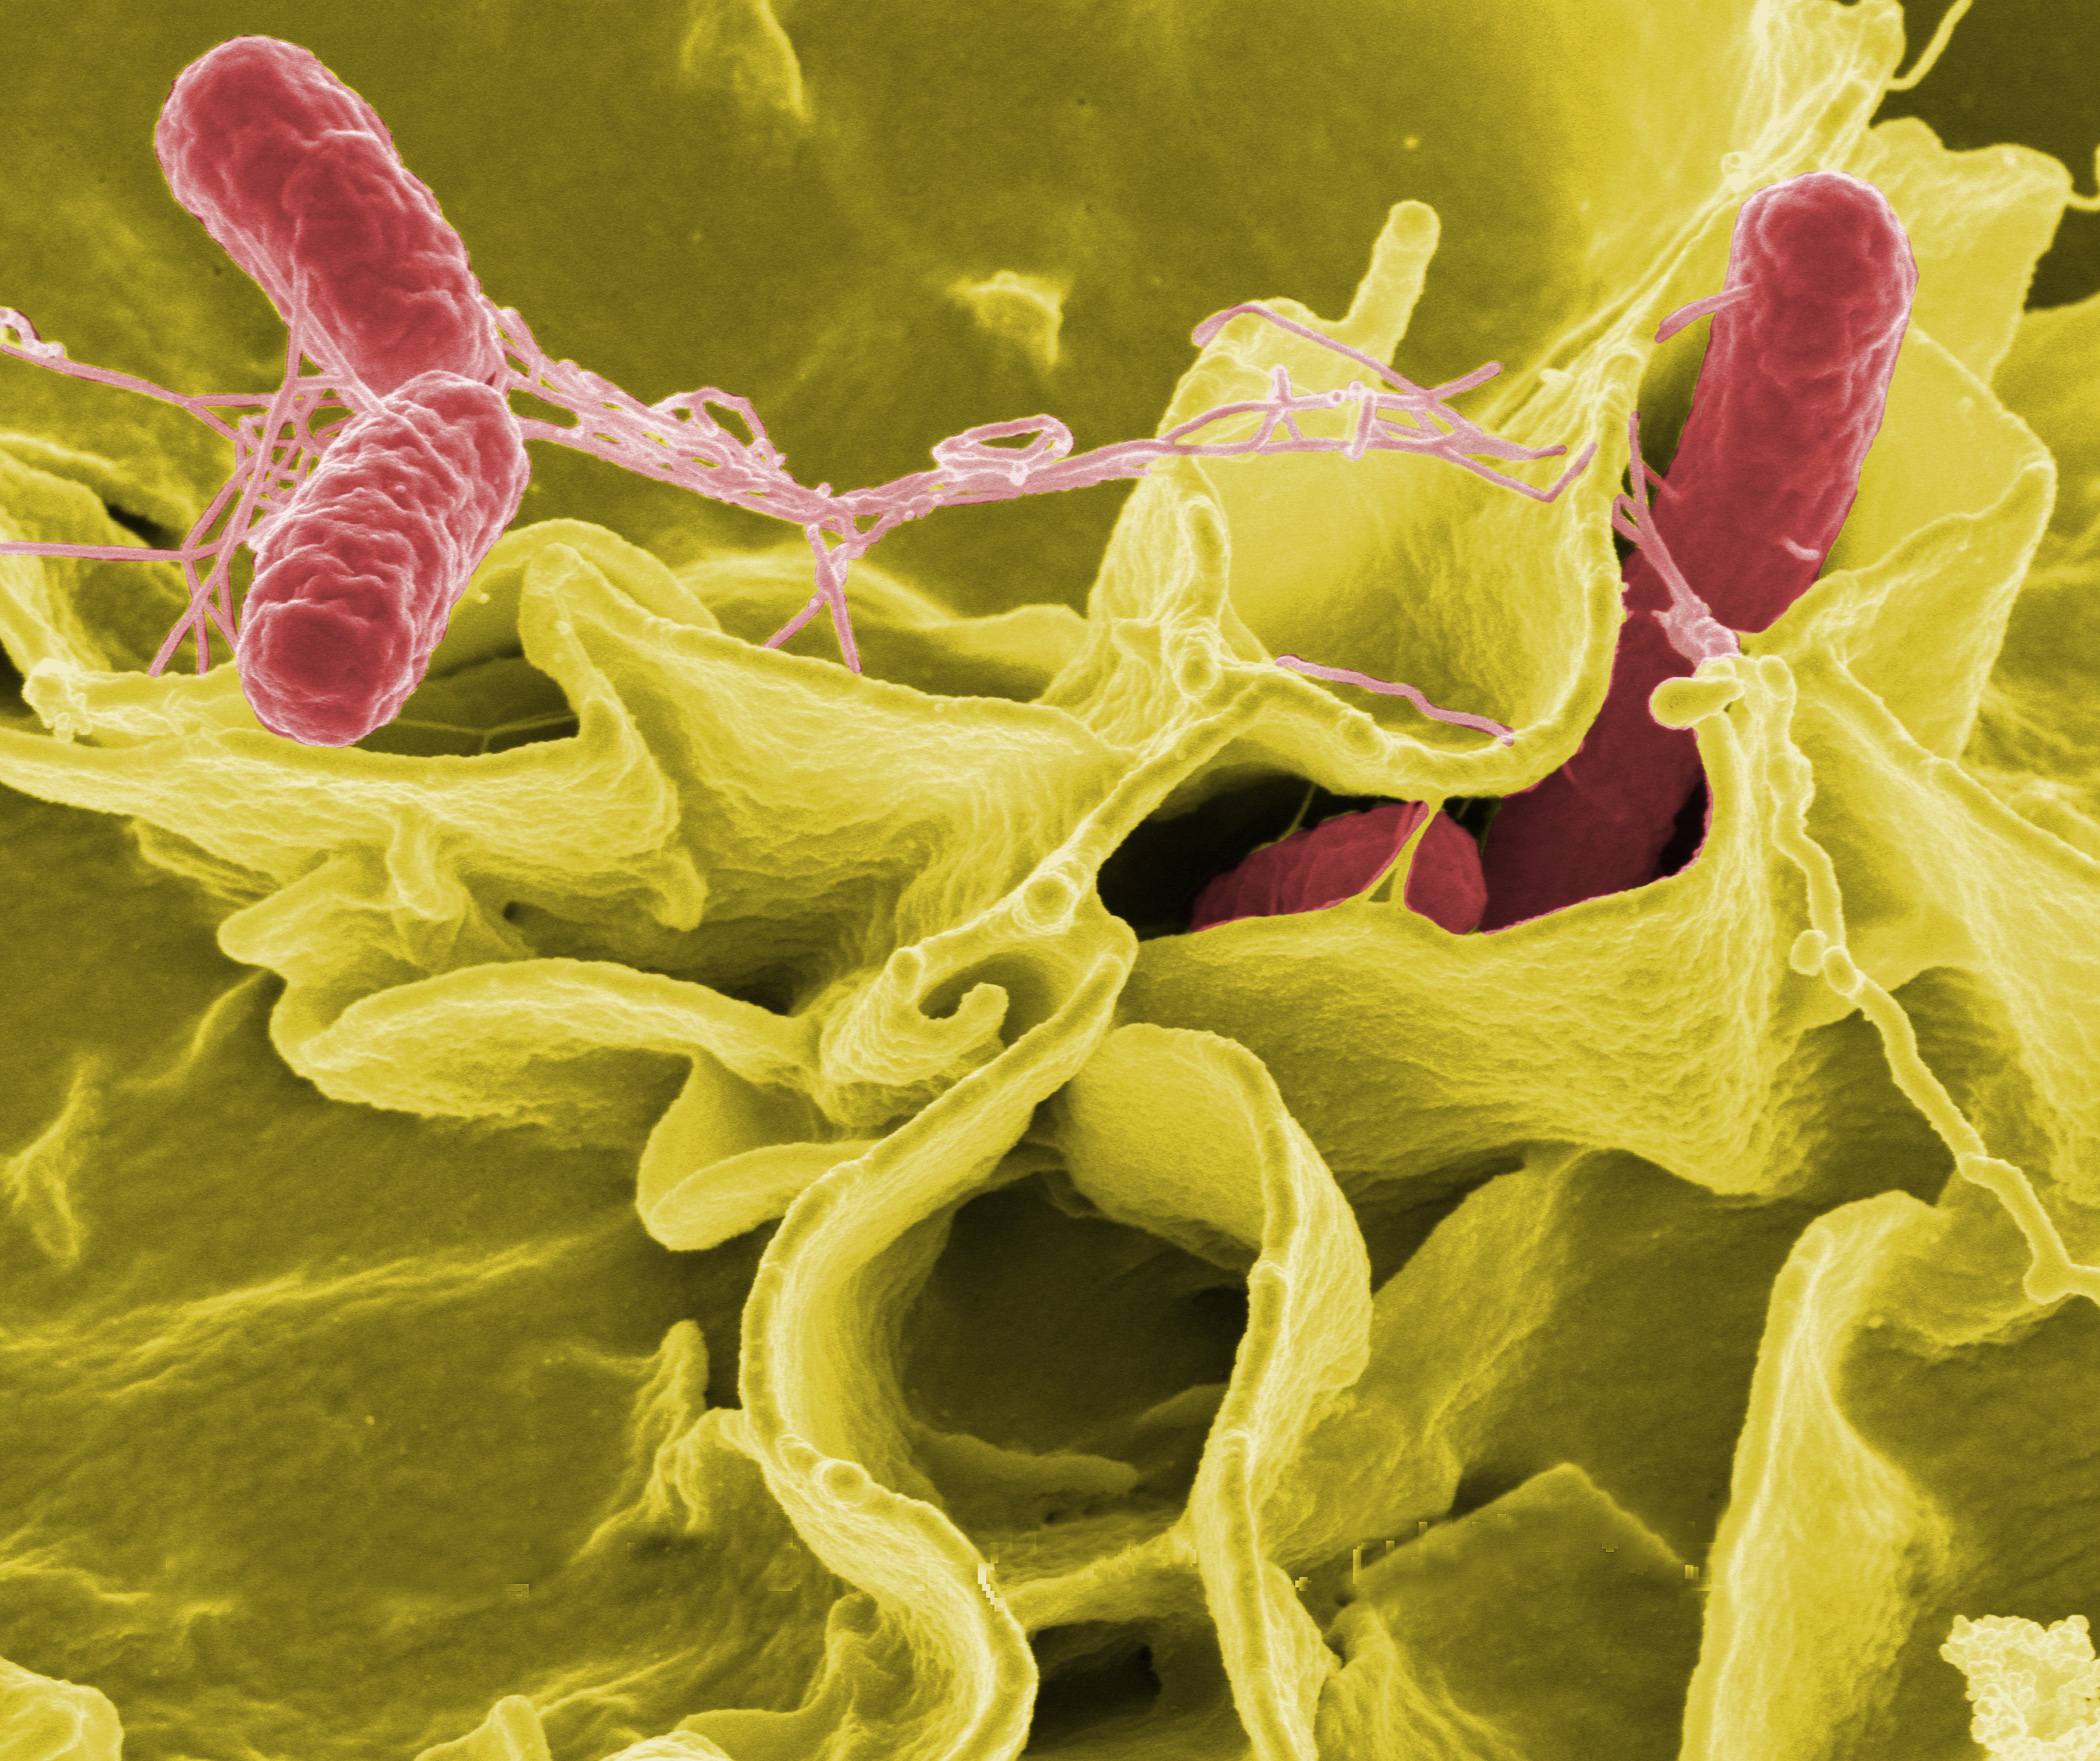 Bacteria Grow More ... and Are More Deadly